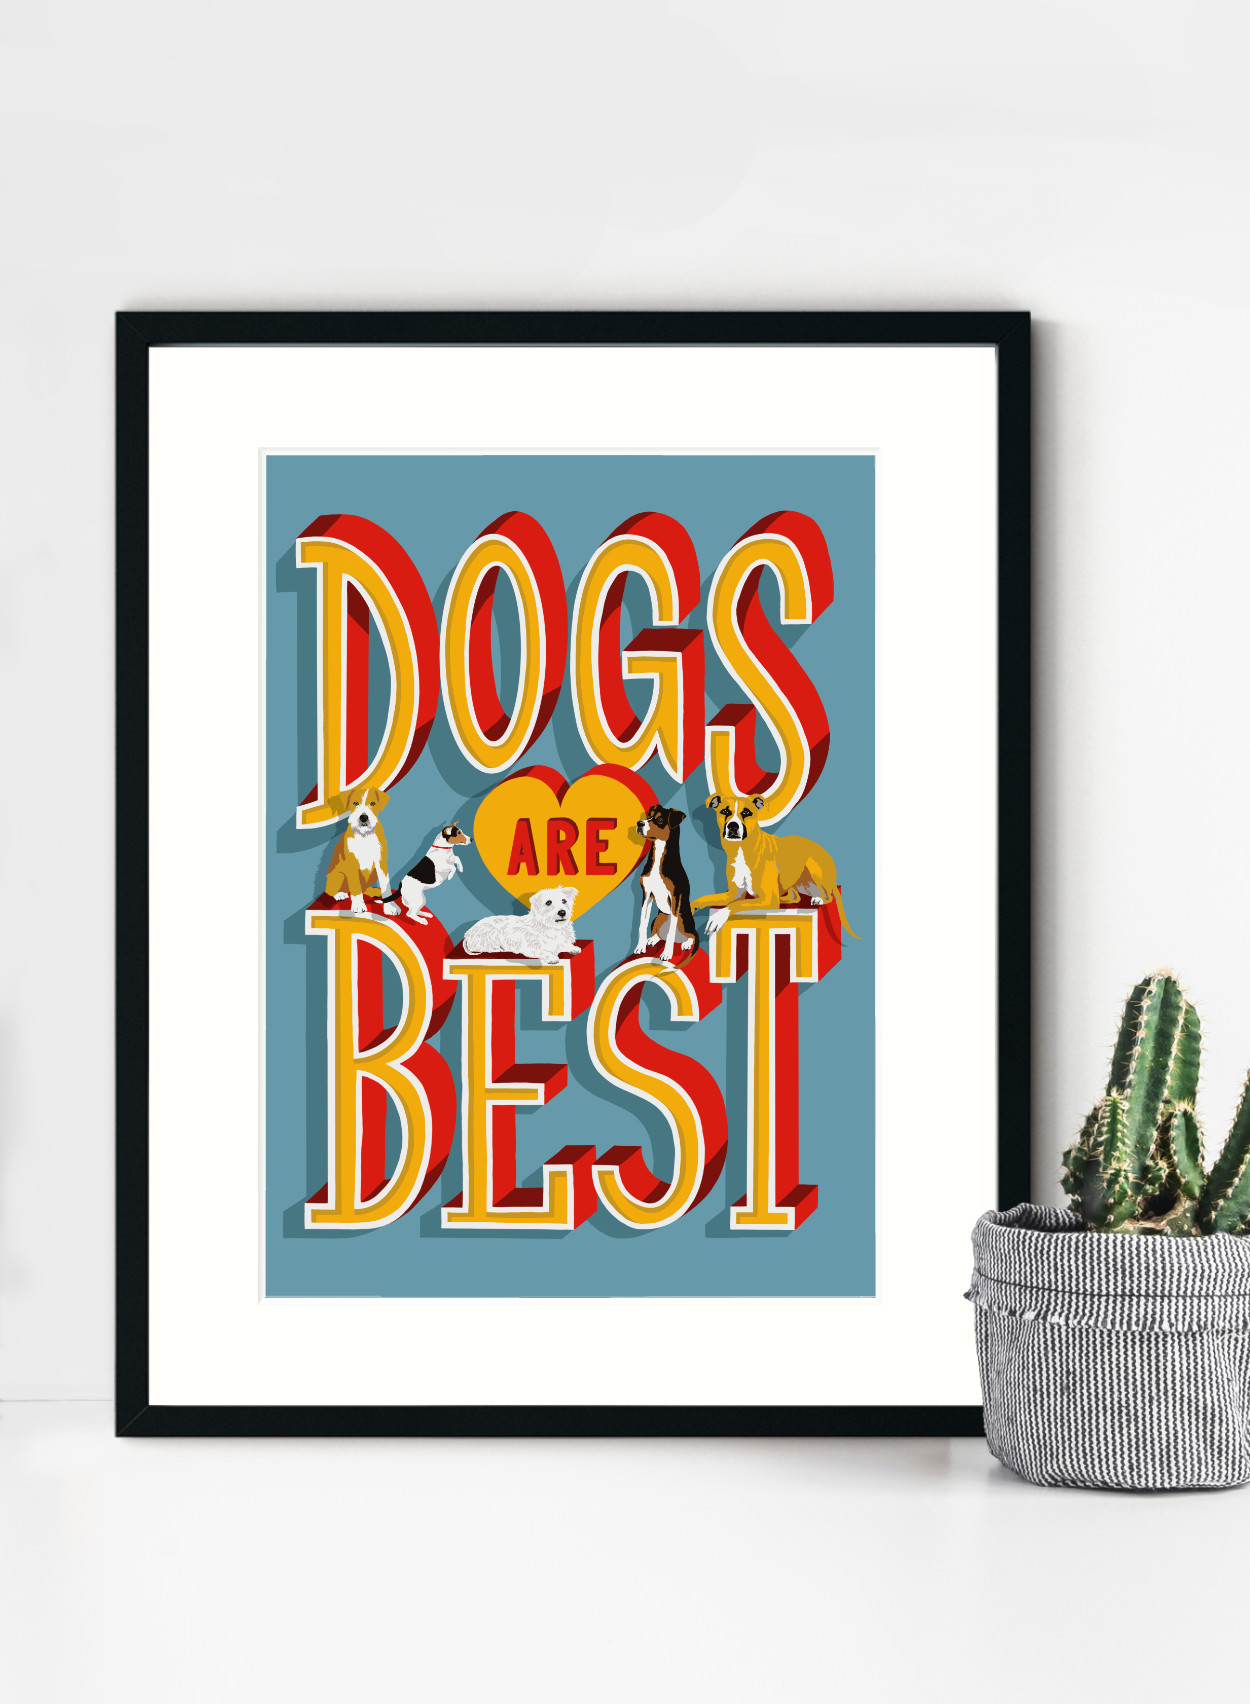 Dogs Are Best Framed Print | The Enlightened Hound